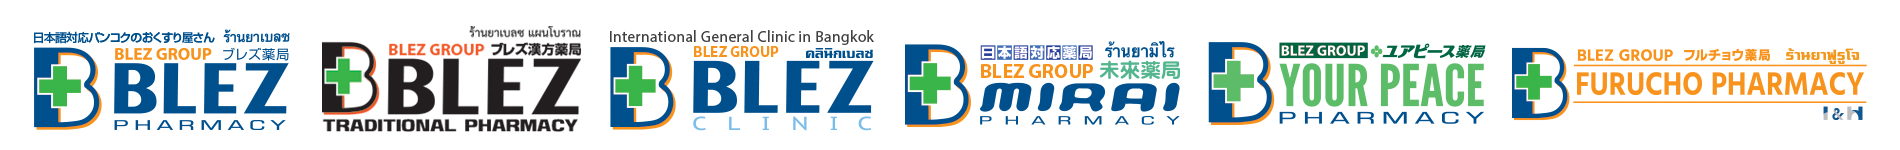 BLEZ GROUP Pharmacy Clinic